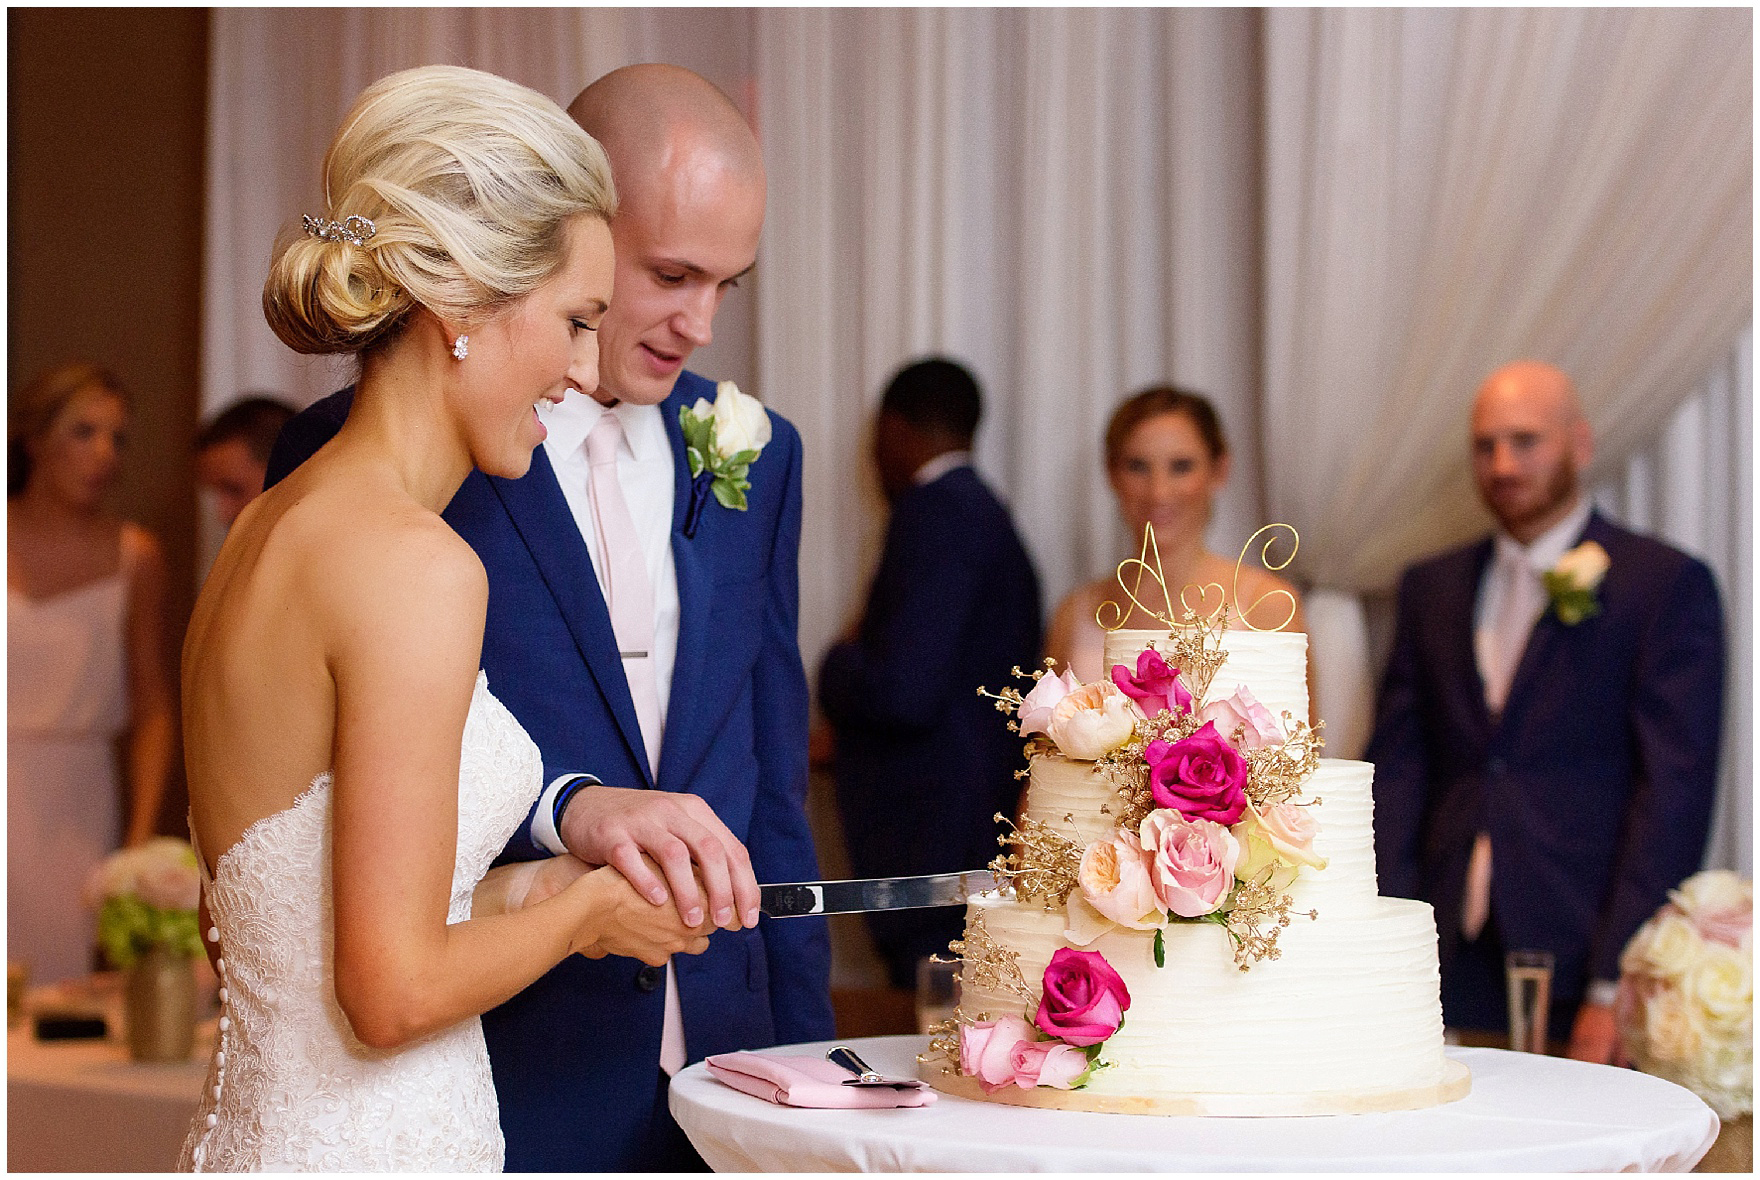 The bride and groom cut their cake for a St. Josephs Downers Grove Pinstripes Oak Brook, Illinois wedding.